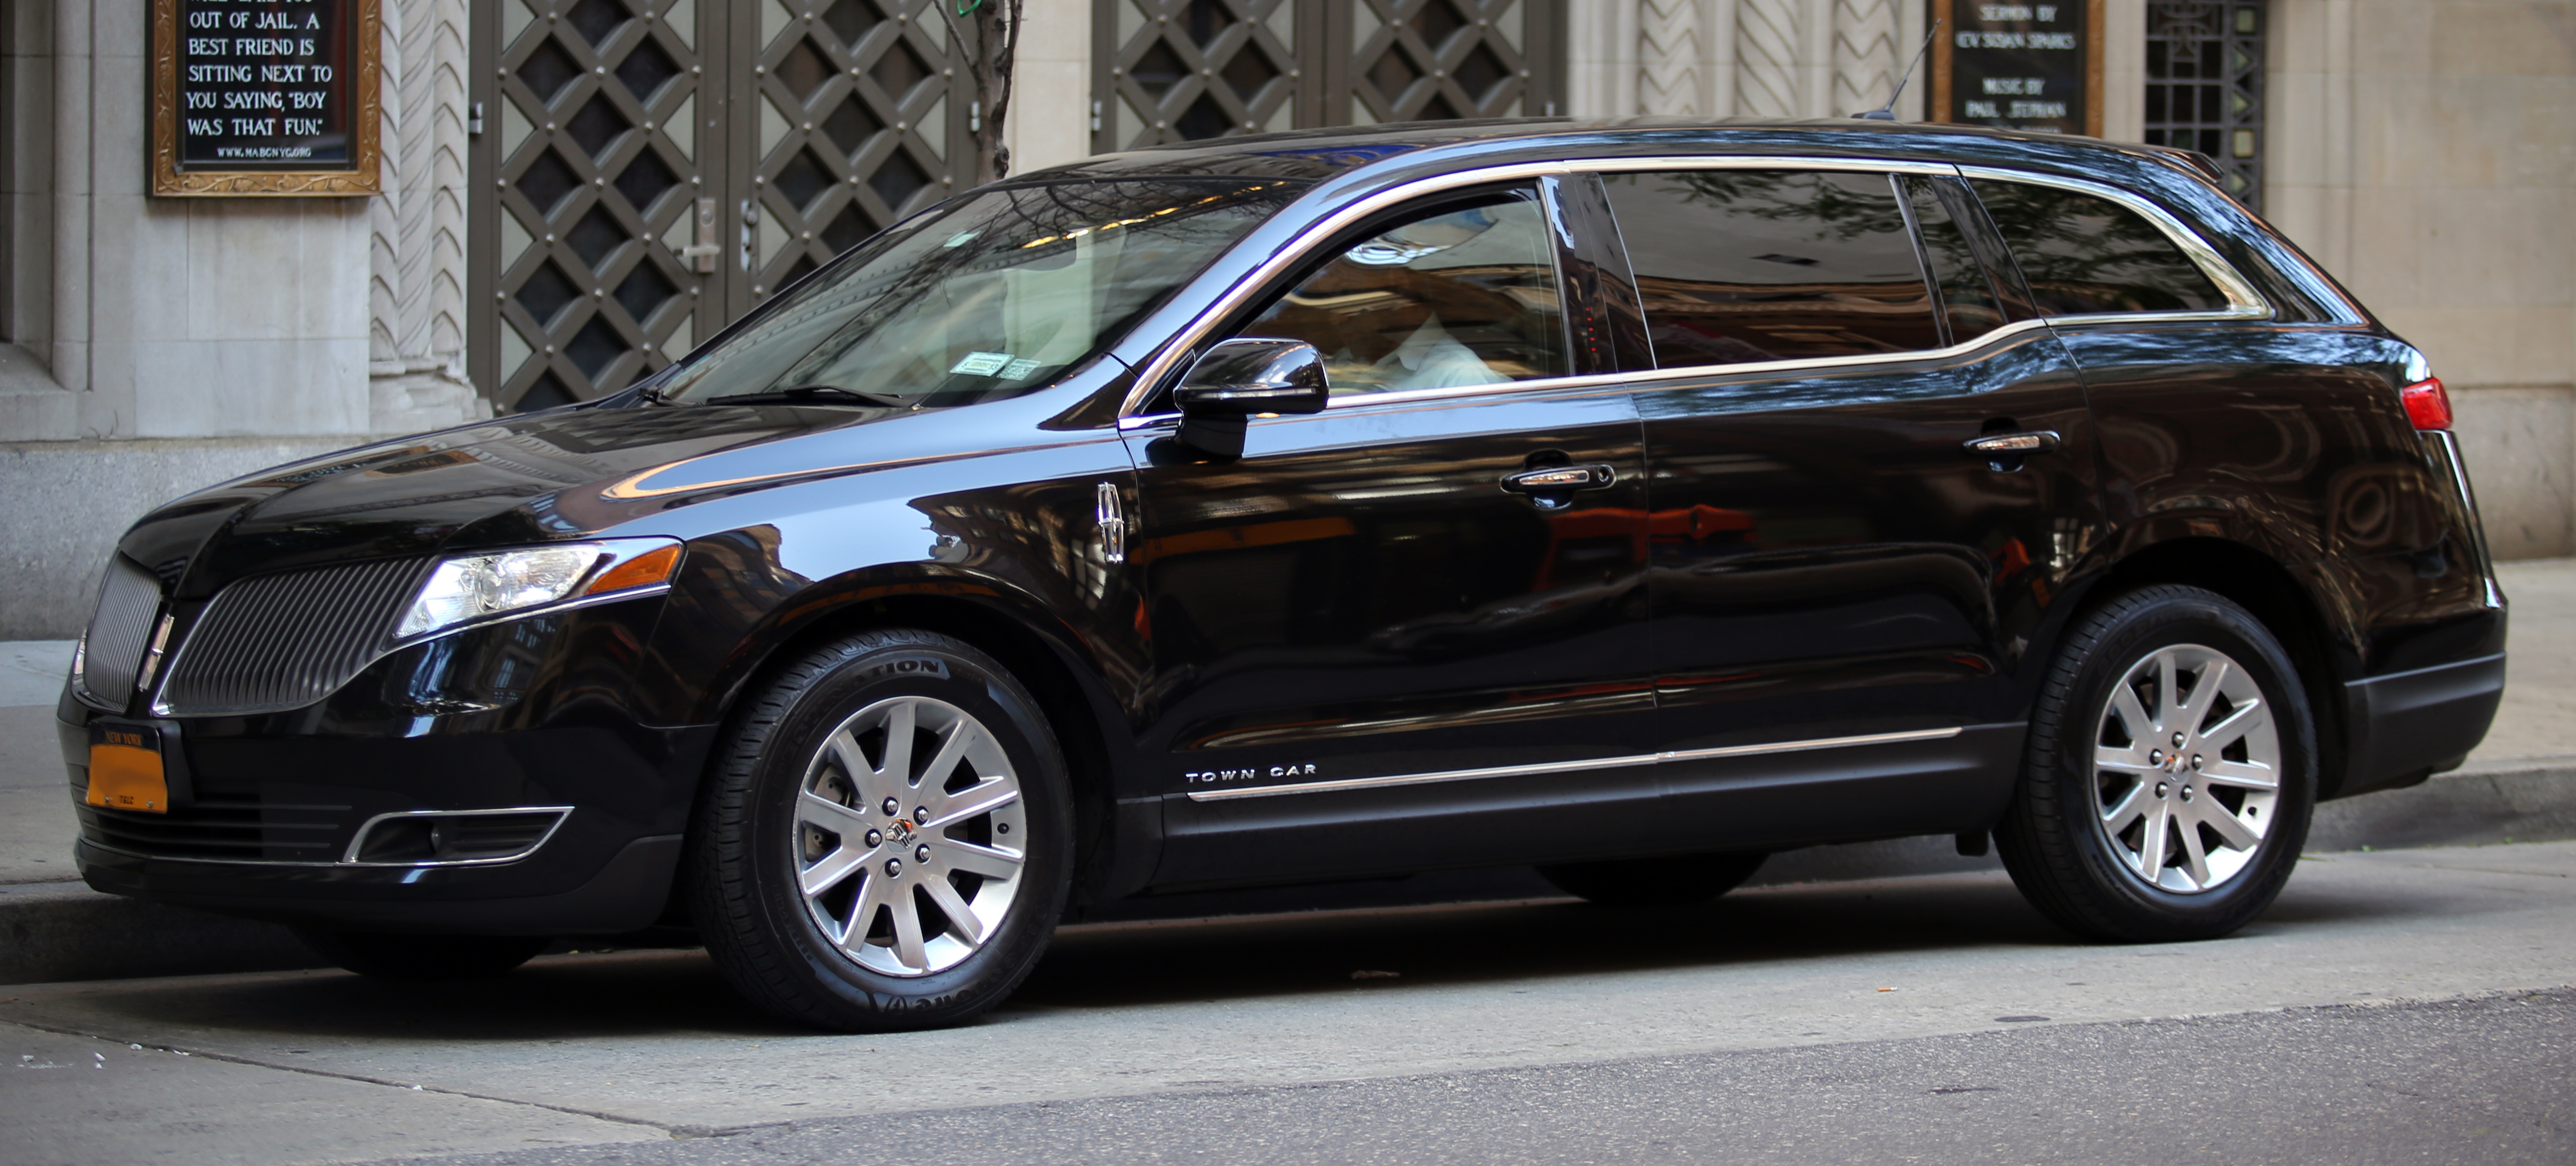 Lincoln Mkt Wikiwand